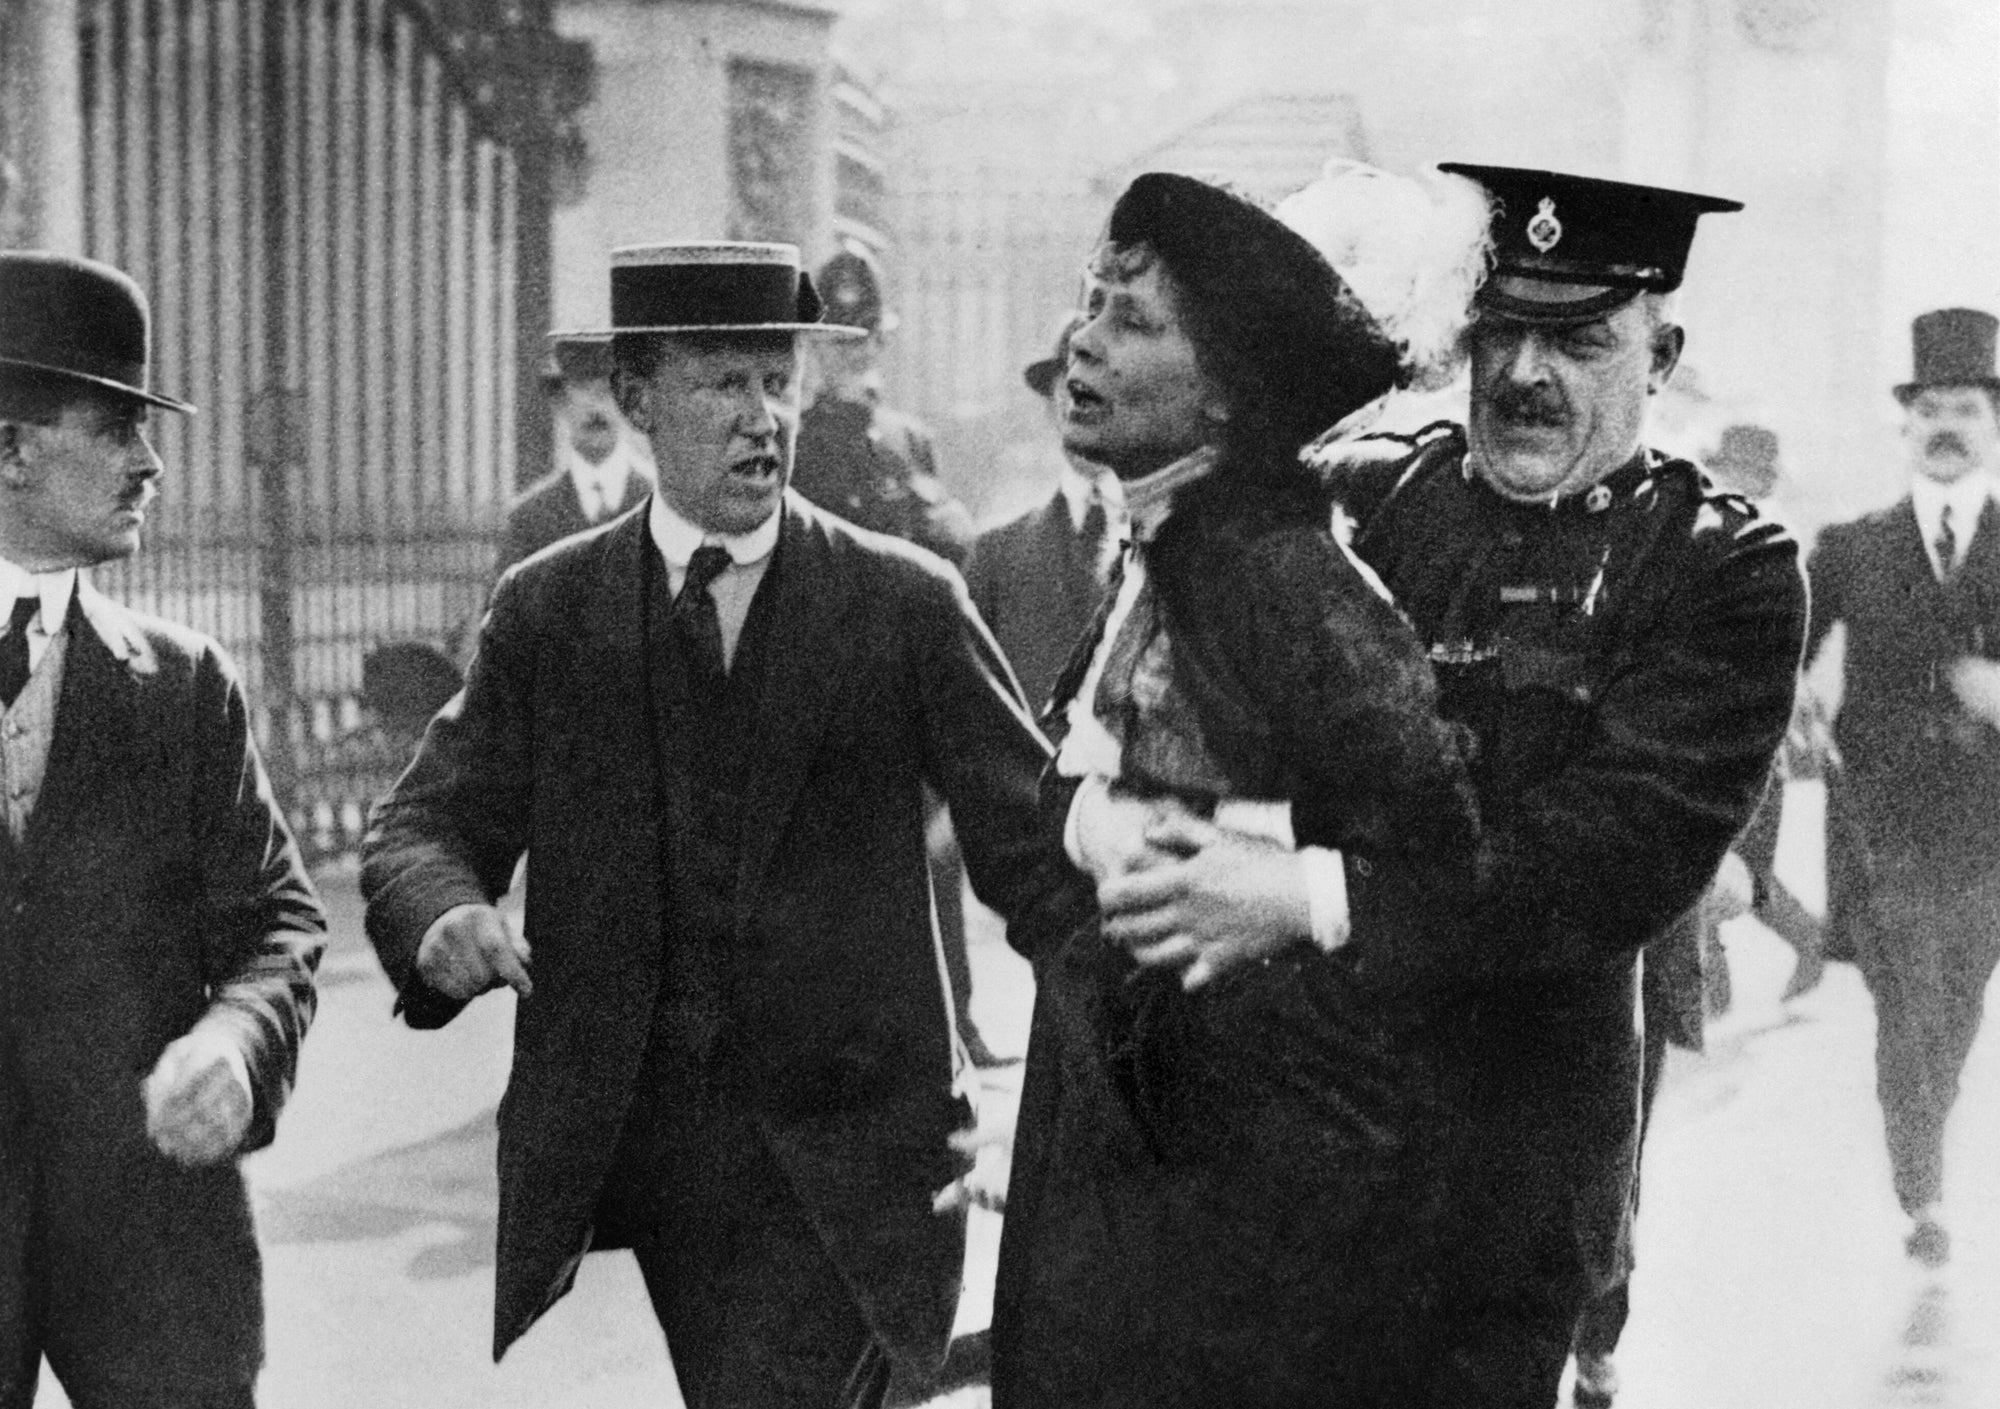 Christabel and Emmeline Pankhurst and the Reasons the Suffragettes Were Ready to Go to Prison